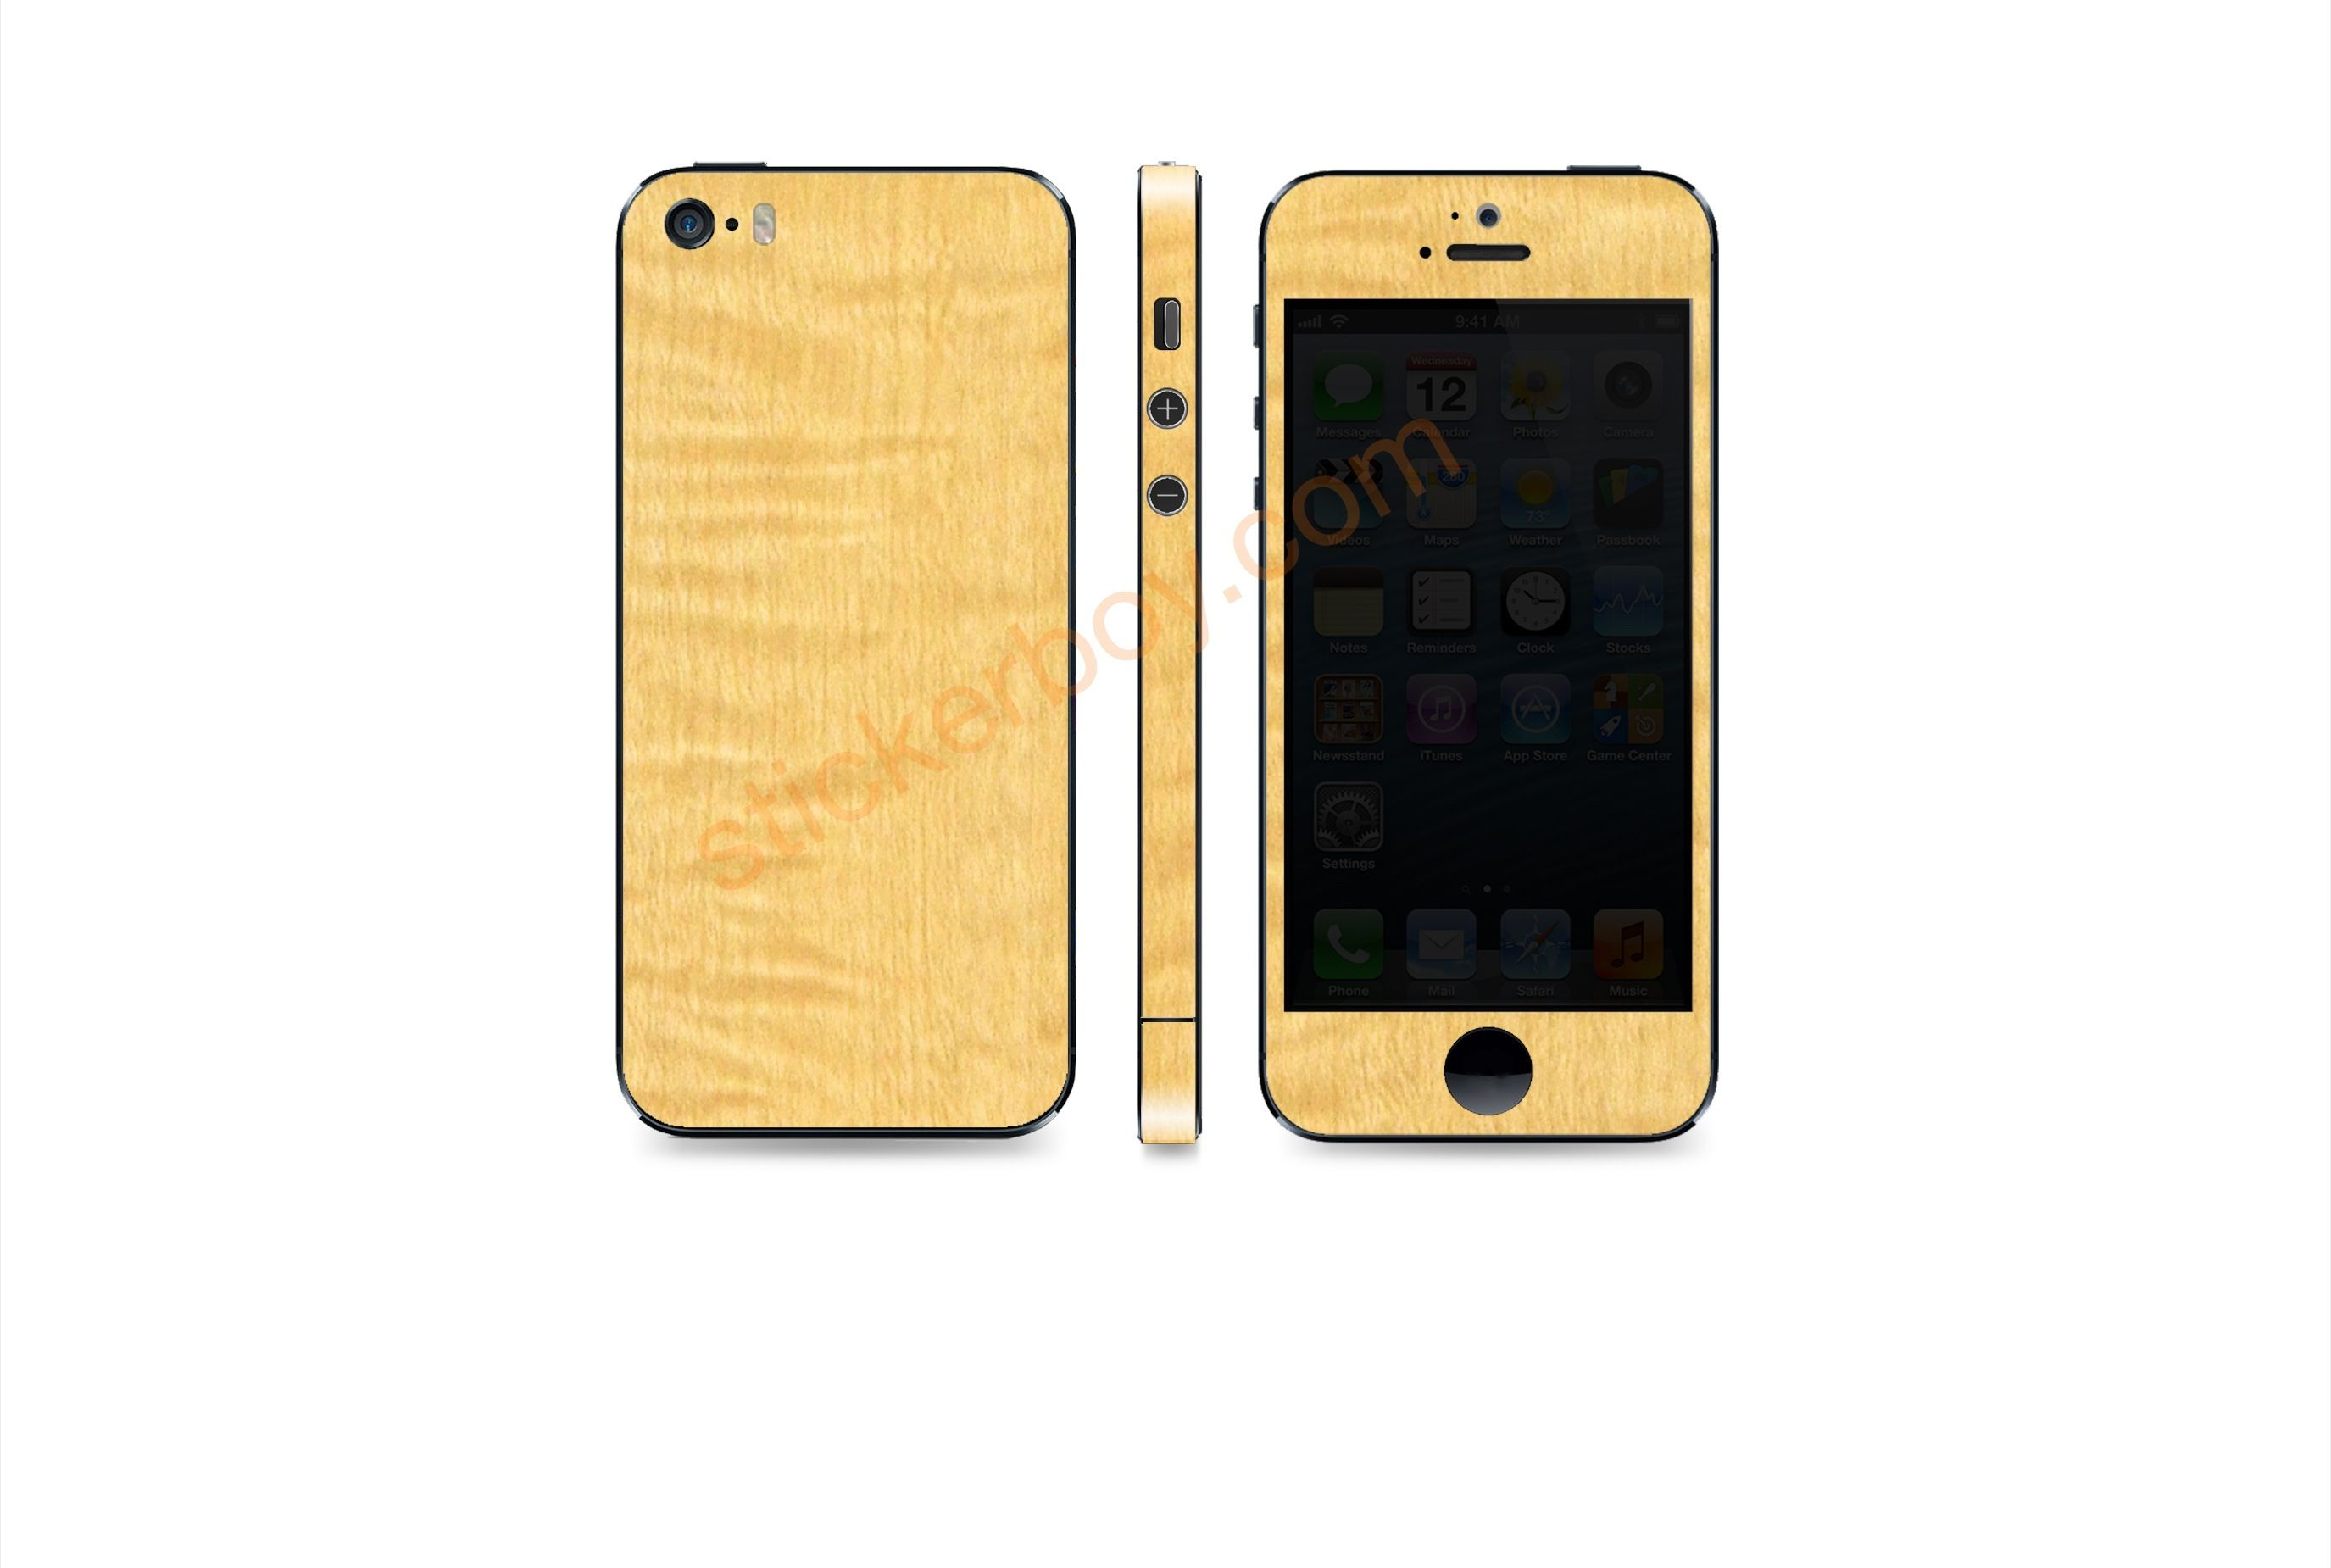 ORDER NOW - iPHONE 5S WOOD SERIES